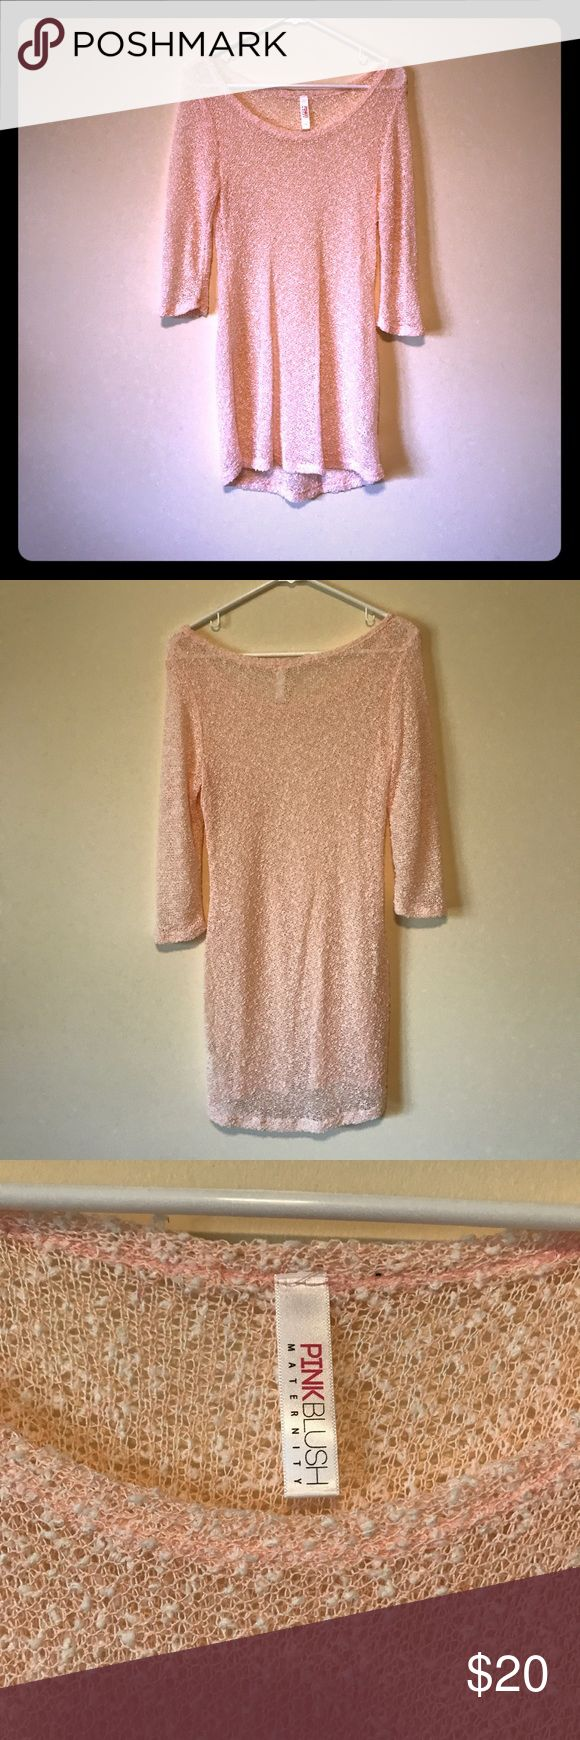 Pink Blush Maternity Pink long tunic top, size L Pink Blush Long tunic top- worn Maternity and not. Light pink color and see through (see last pic). Longer sleeves, comfy and no imperfections. Pinkblush Tops